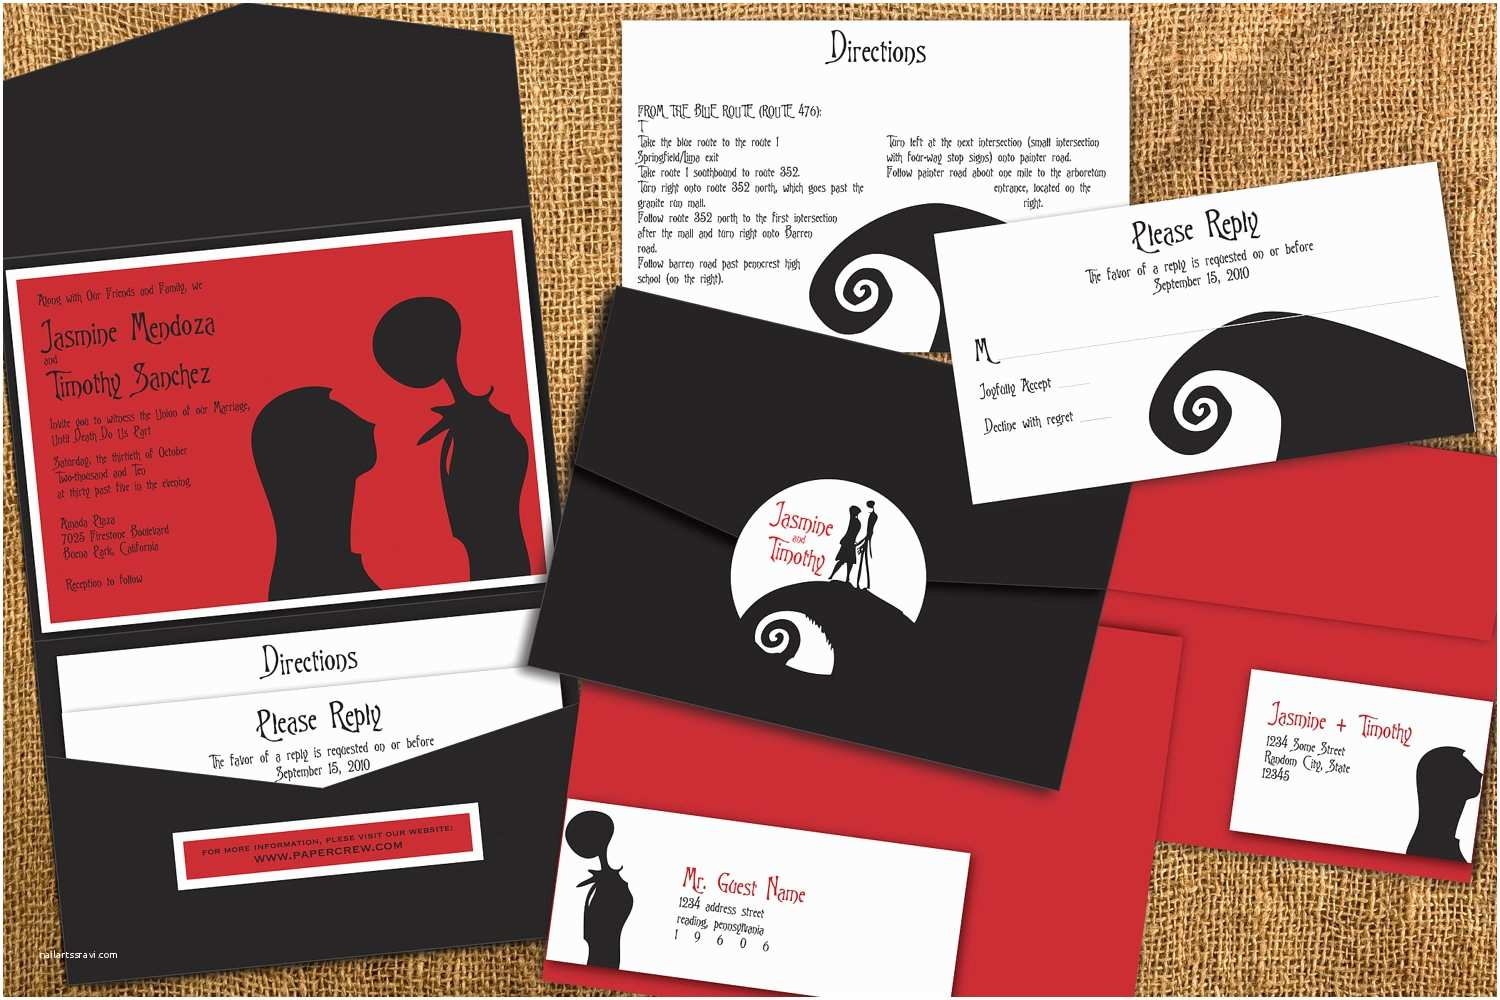 Nightmare before Christmas Wedding Invitations Nightmare before Christmas Inspired Wedding by Papercrew